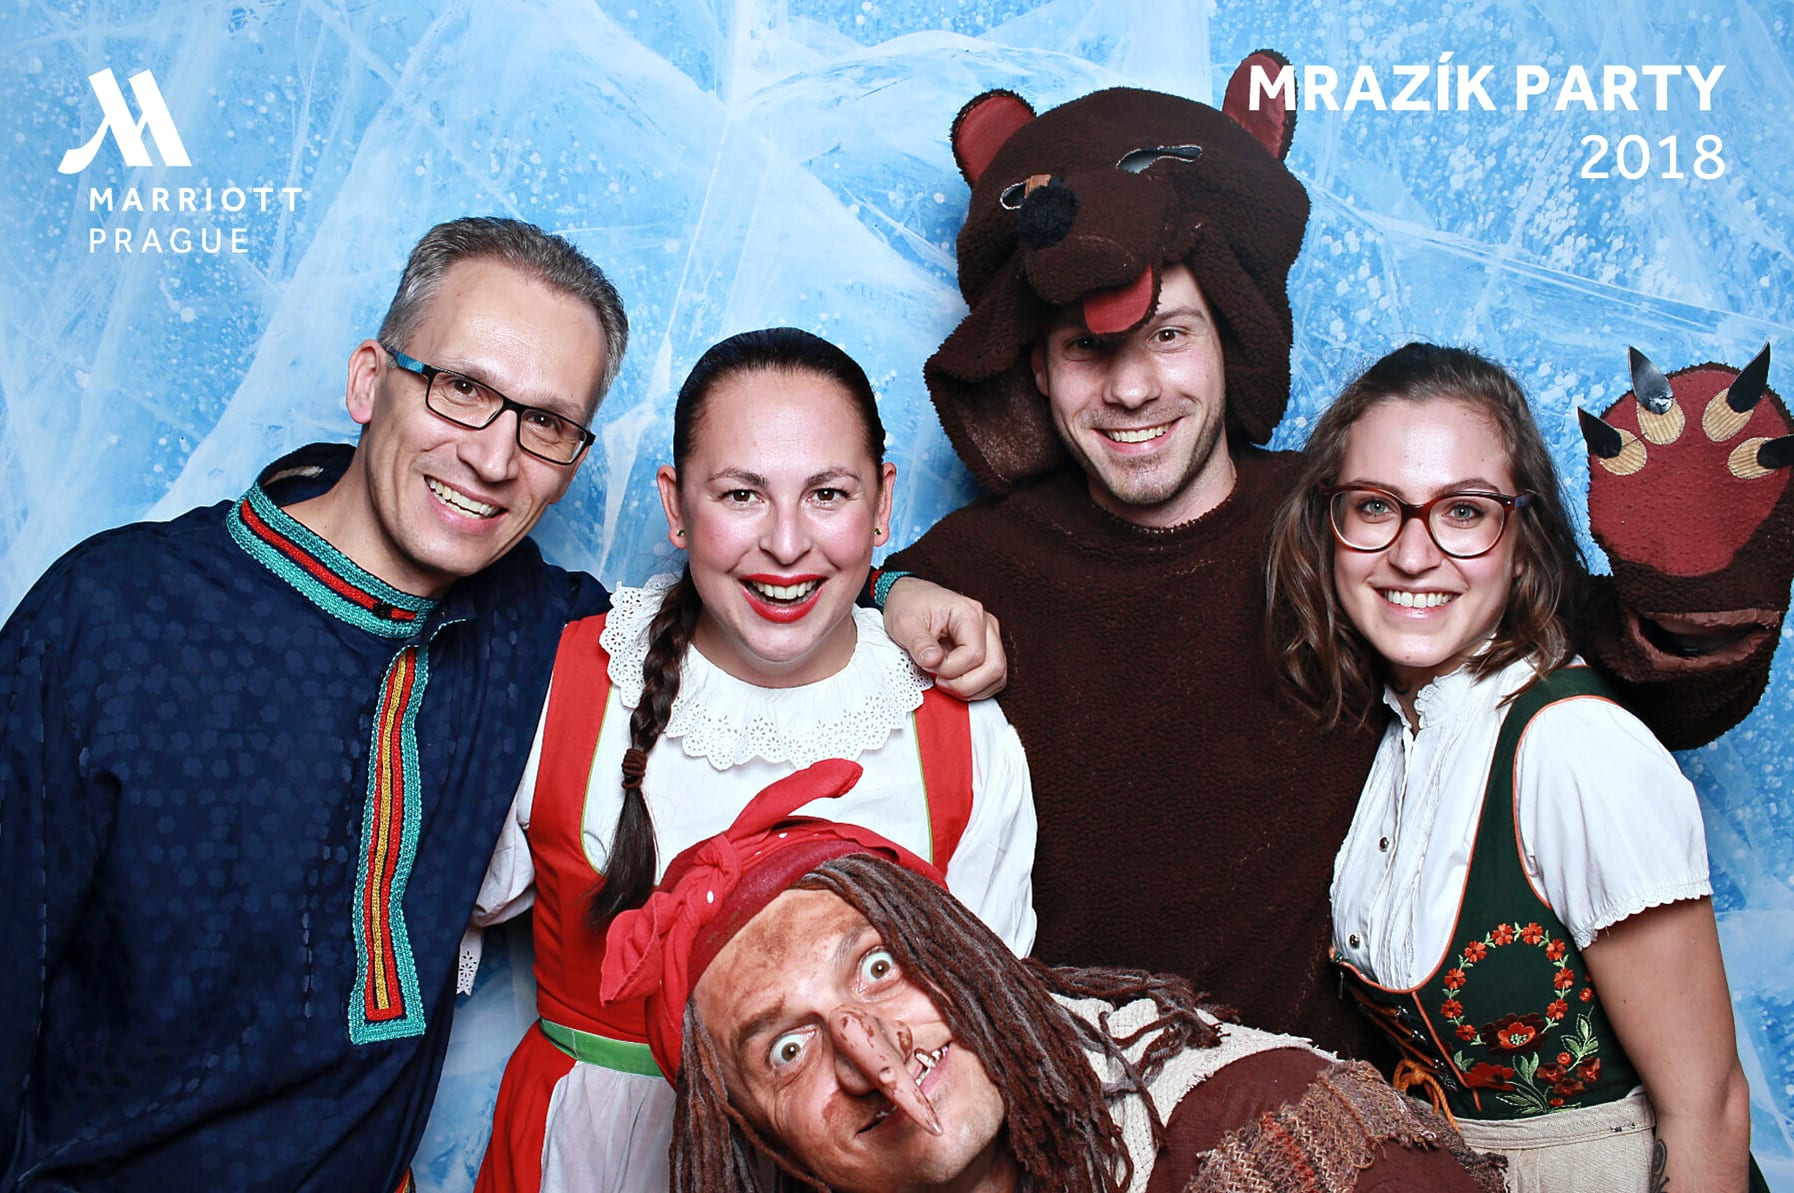 fotokoutek-marriott-prague-mrazik-party-13-12-2018-543614